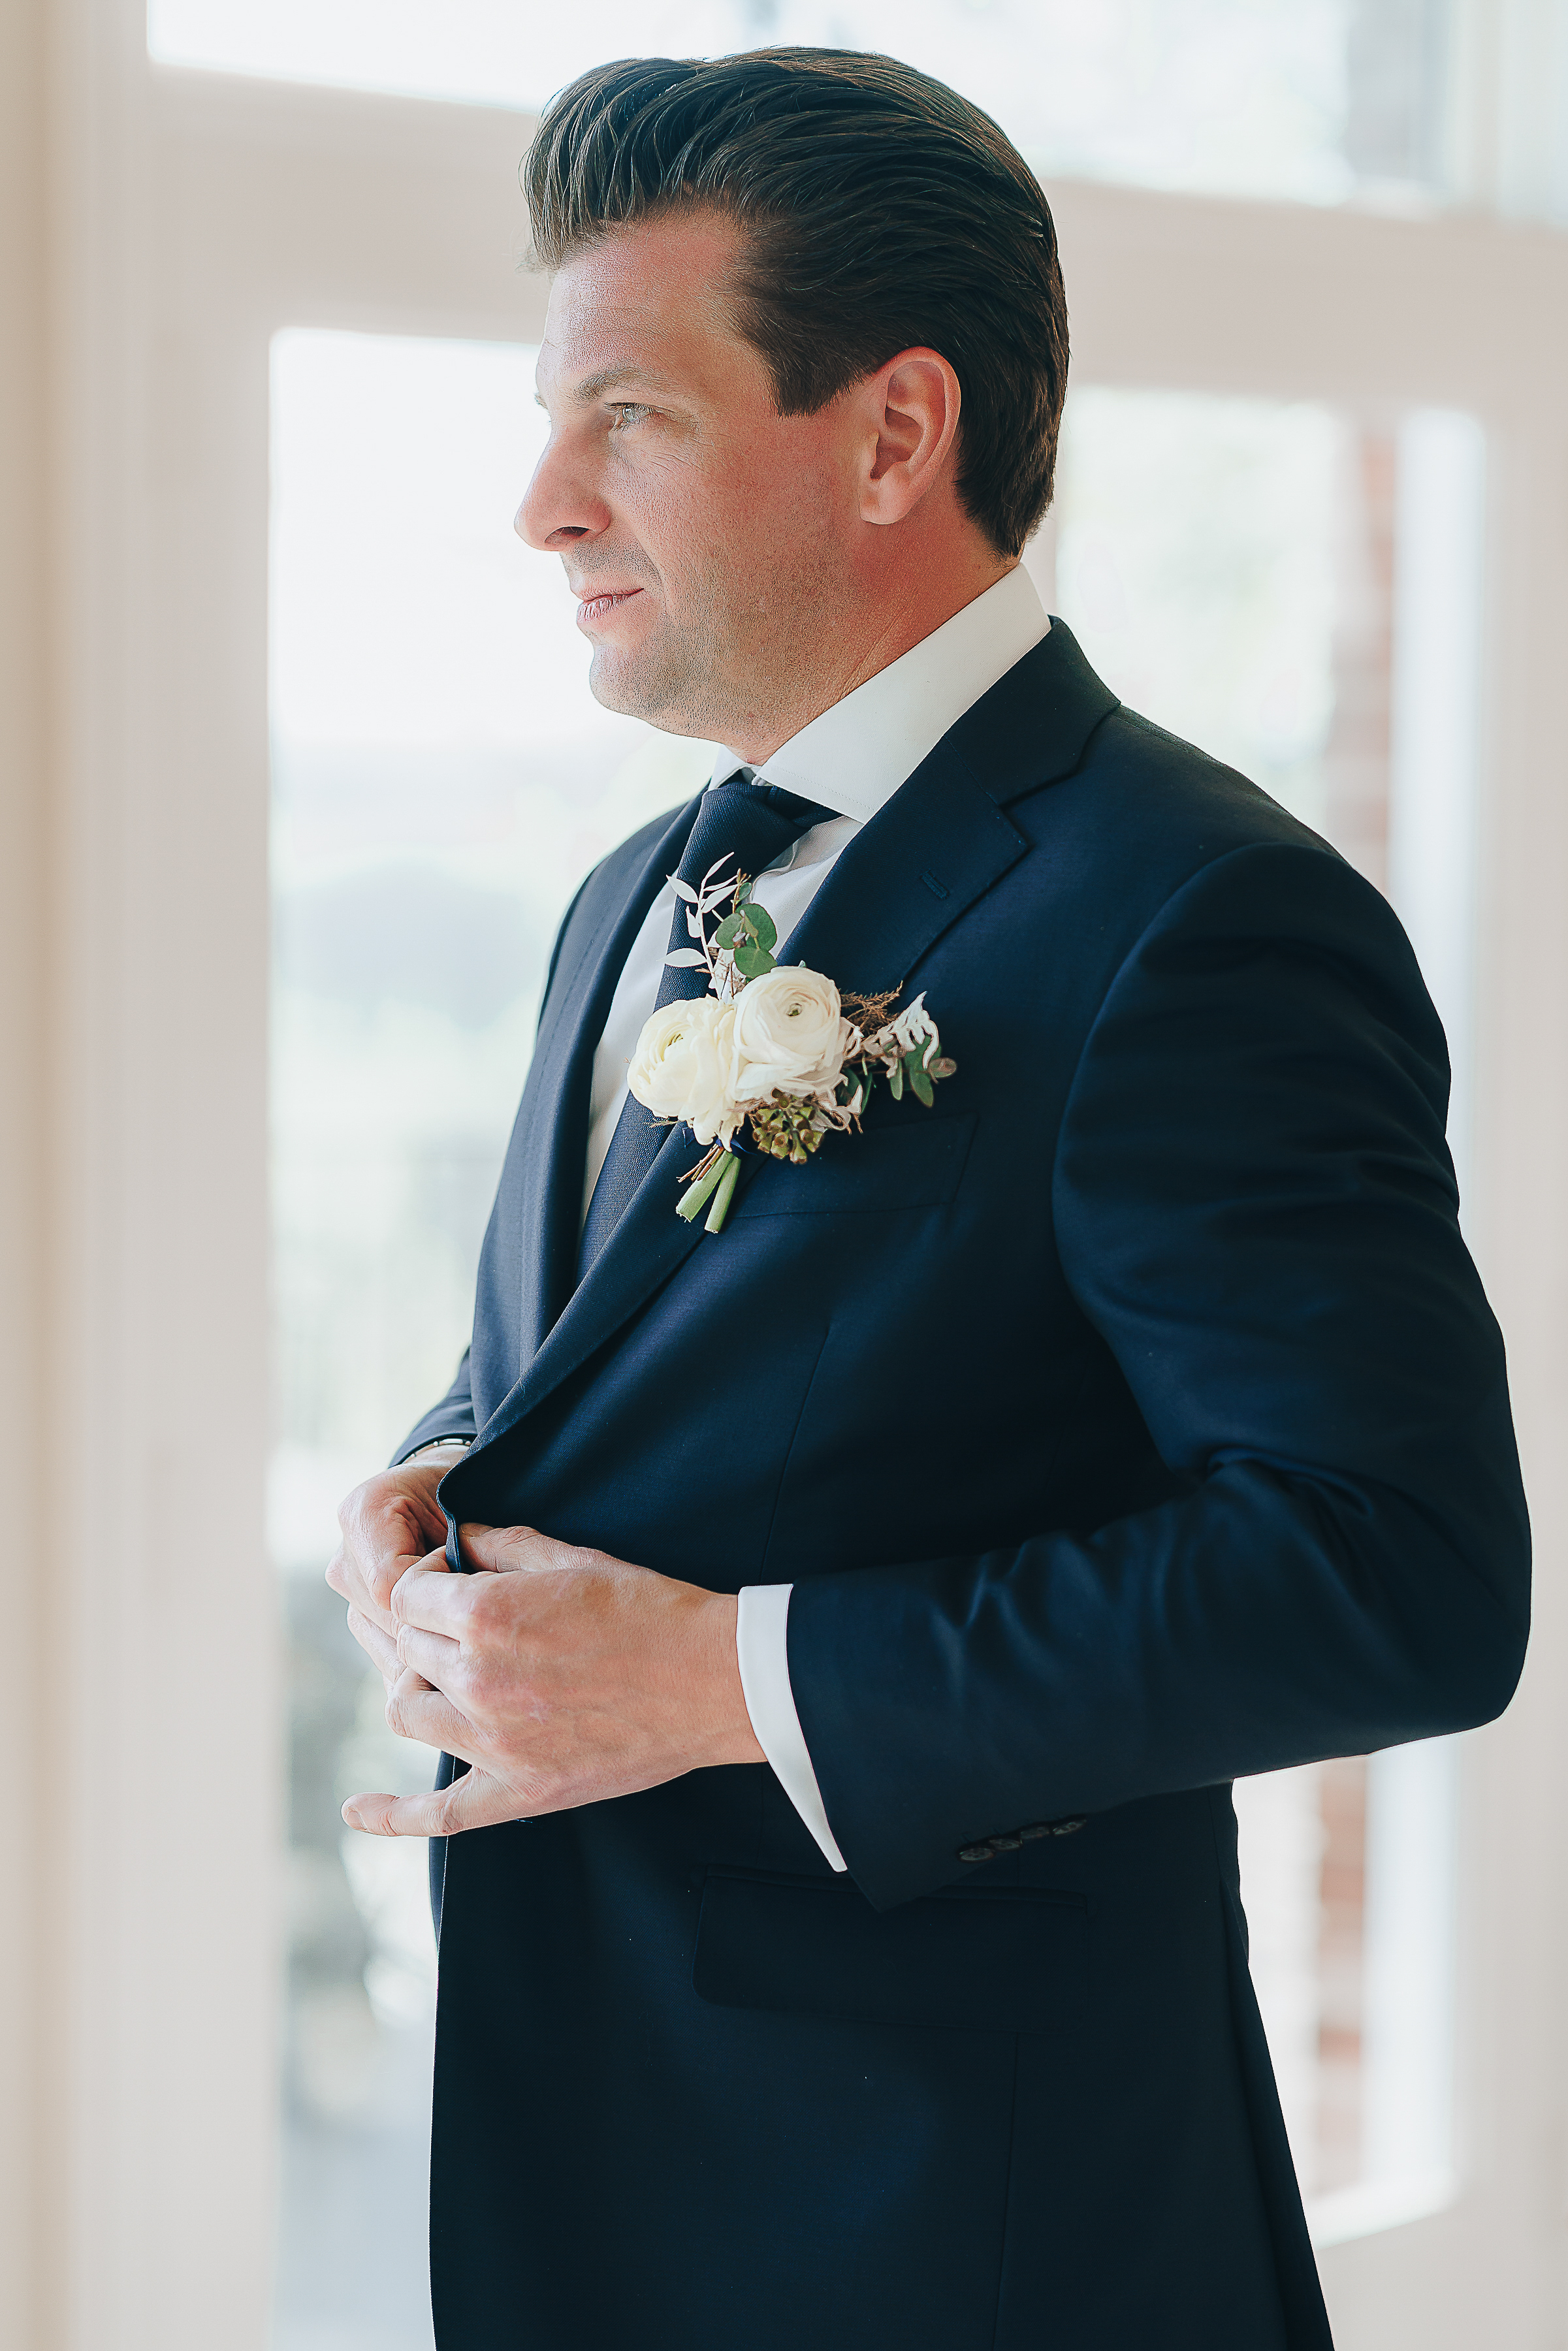 Groom buttoning his suit jacket.